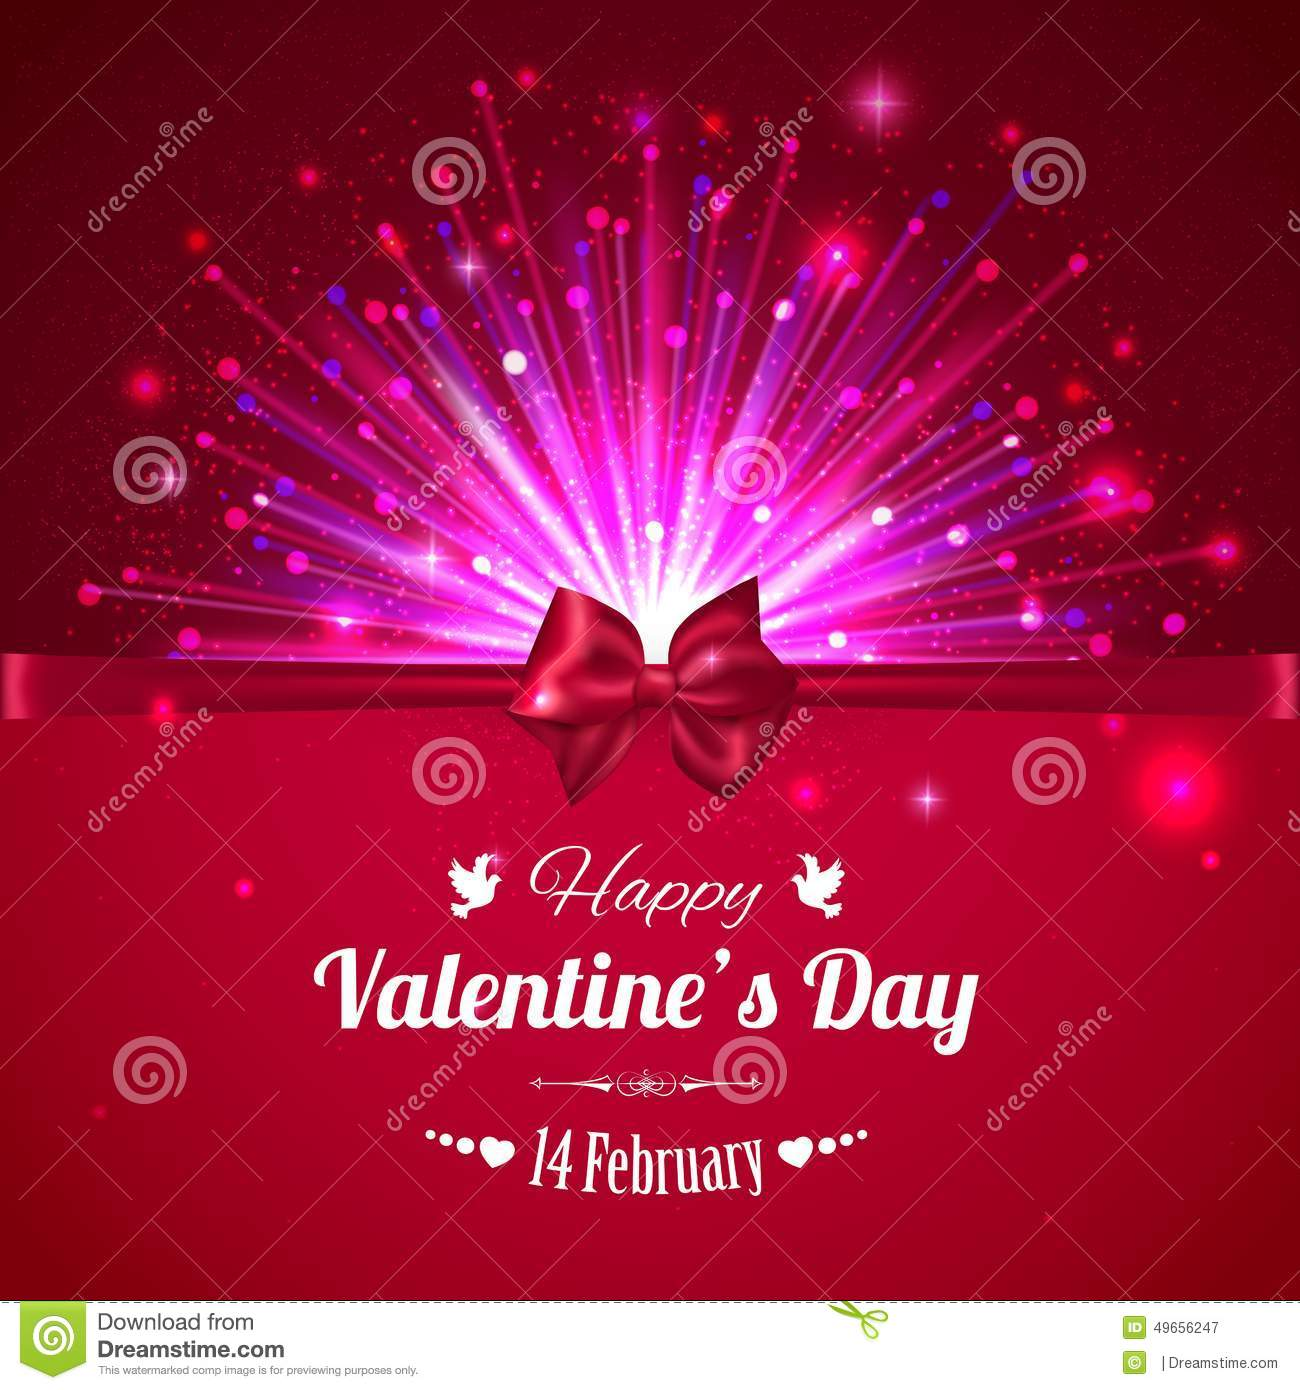 Happy Valentines Day Typographical Glow Holiday Stock Vector ...